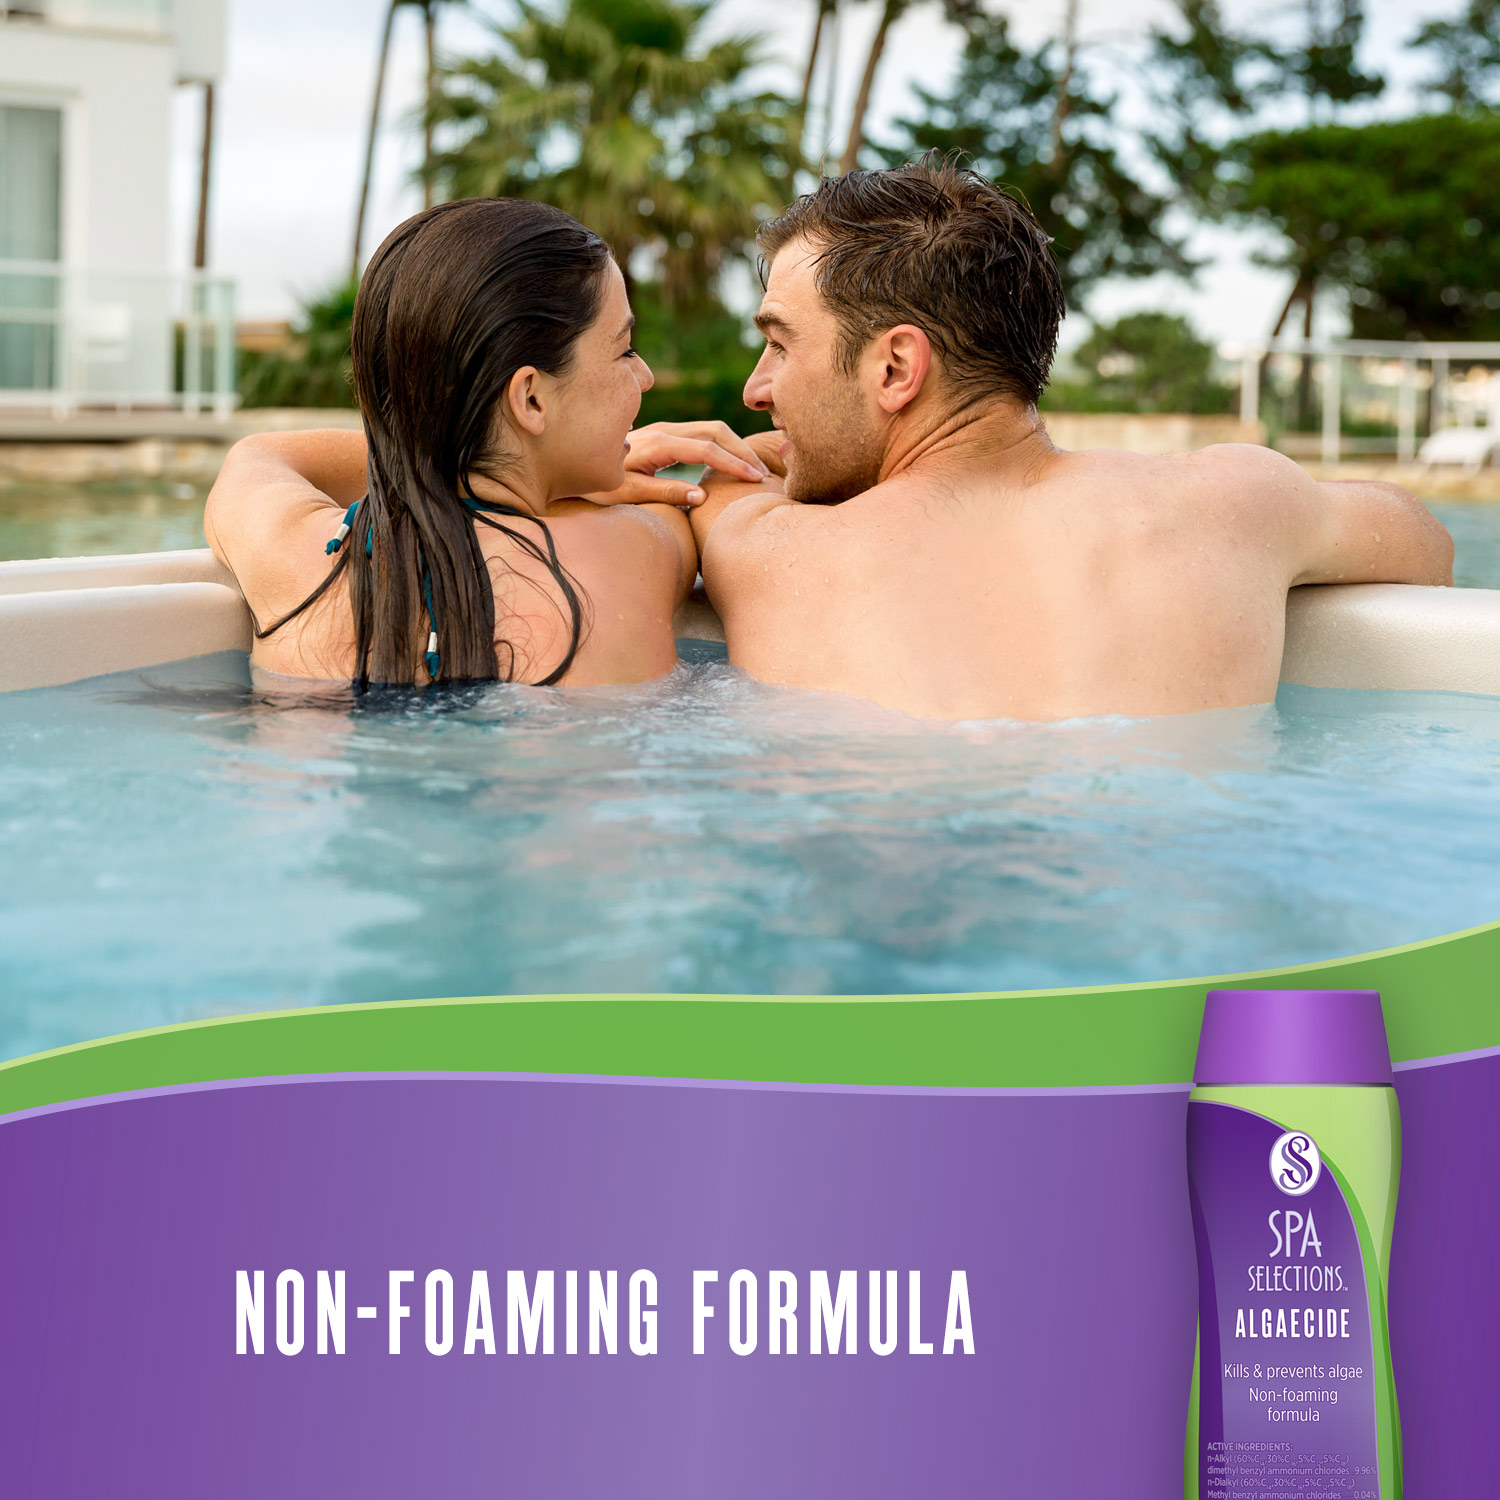 Couple in hot tub. Spa Selections non-foaming formula algaecide.